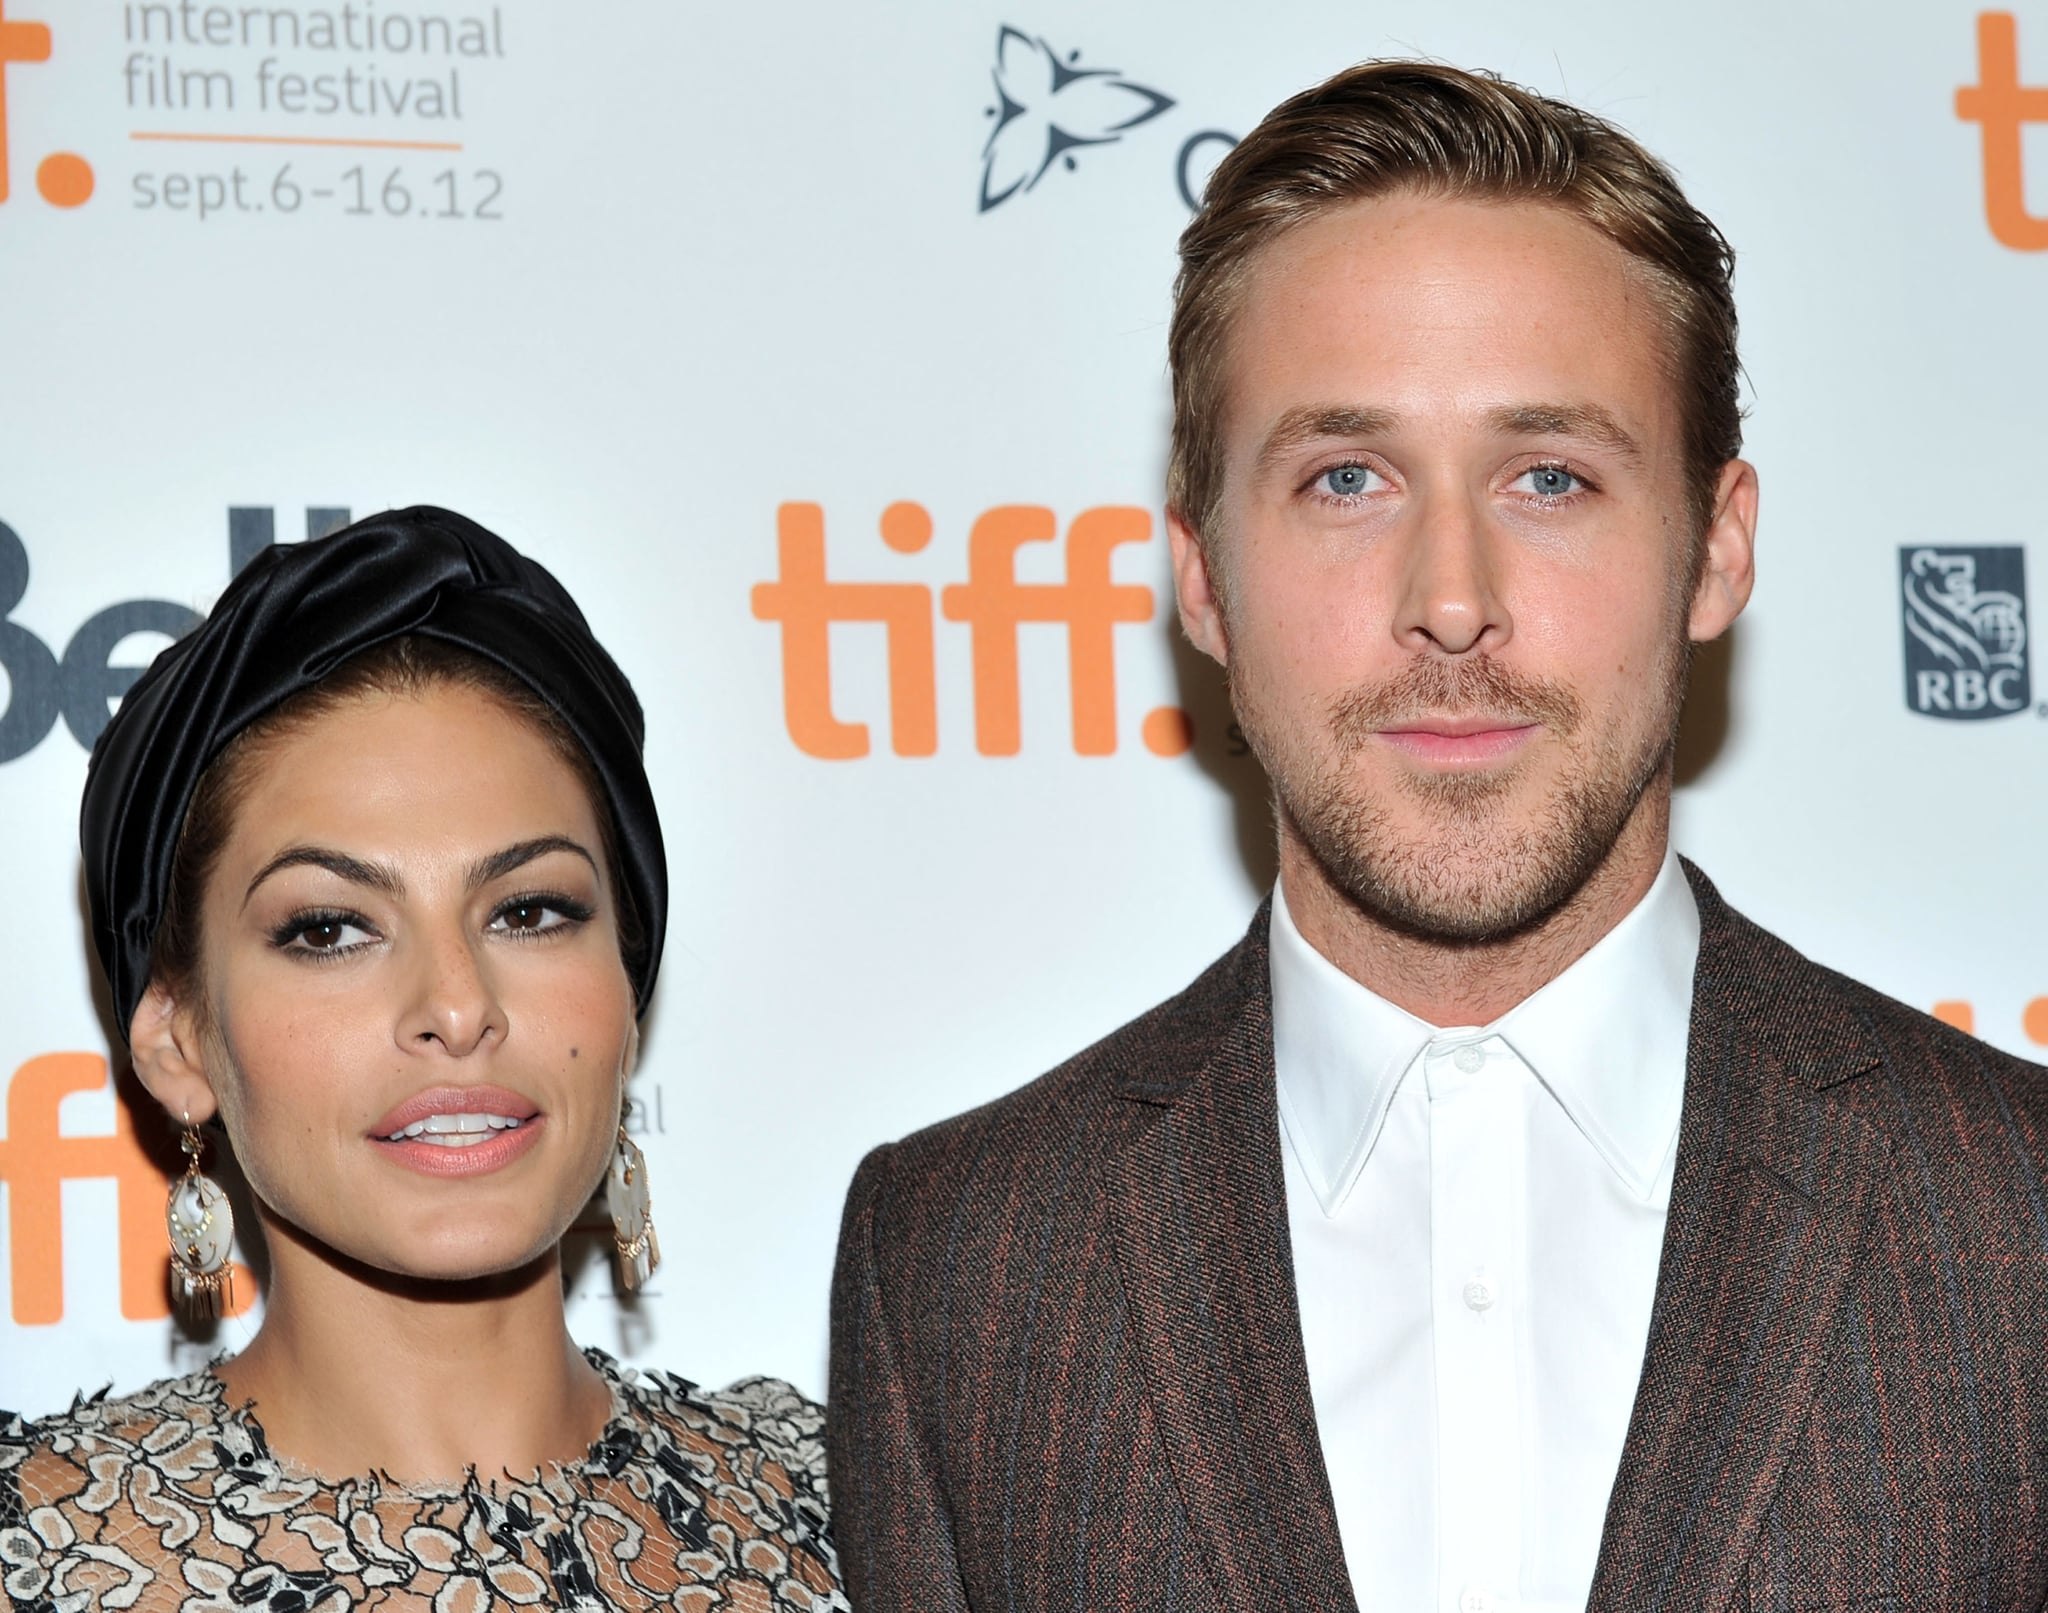 TORONTO, ON - SEPTEMBER 07: Actors Eva Mendes and Ryan Gosling attend